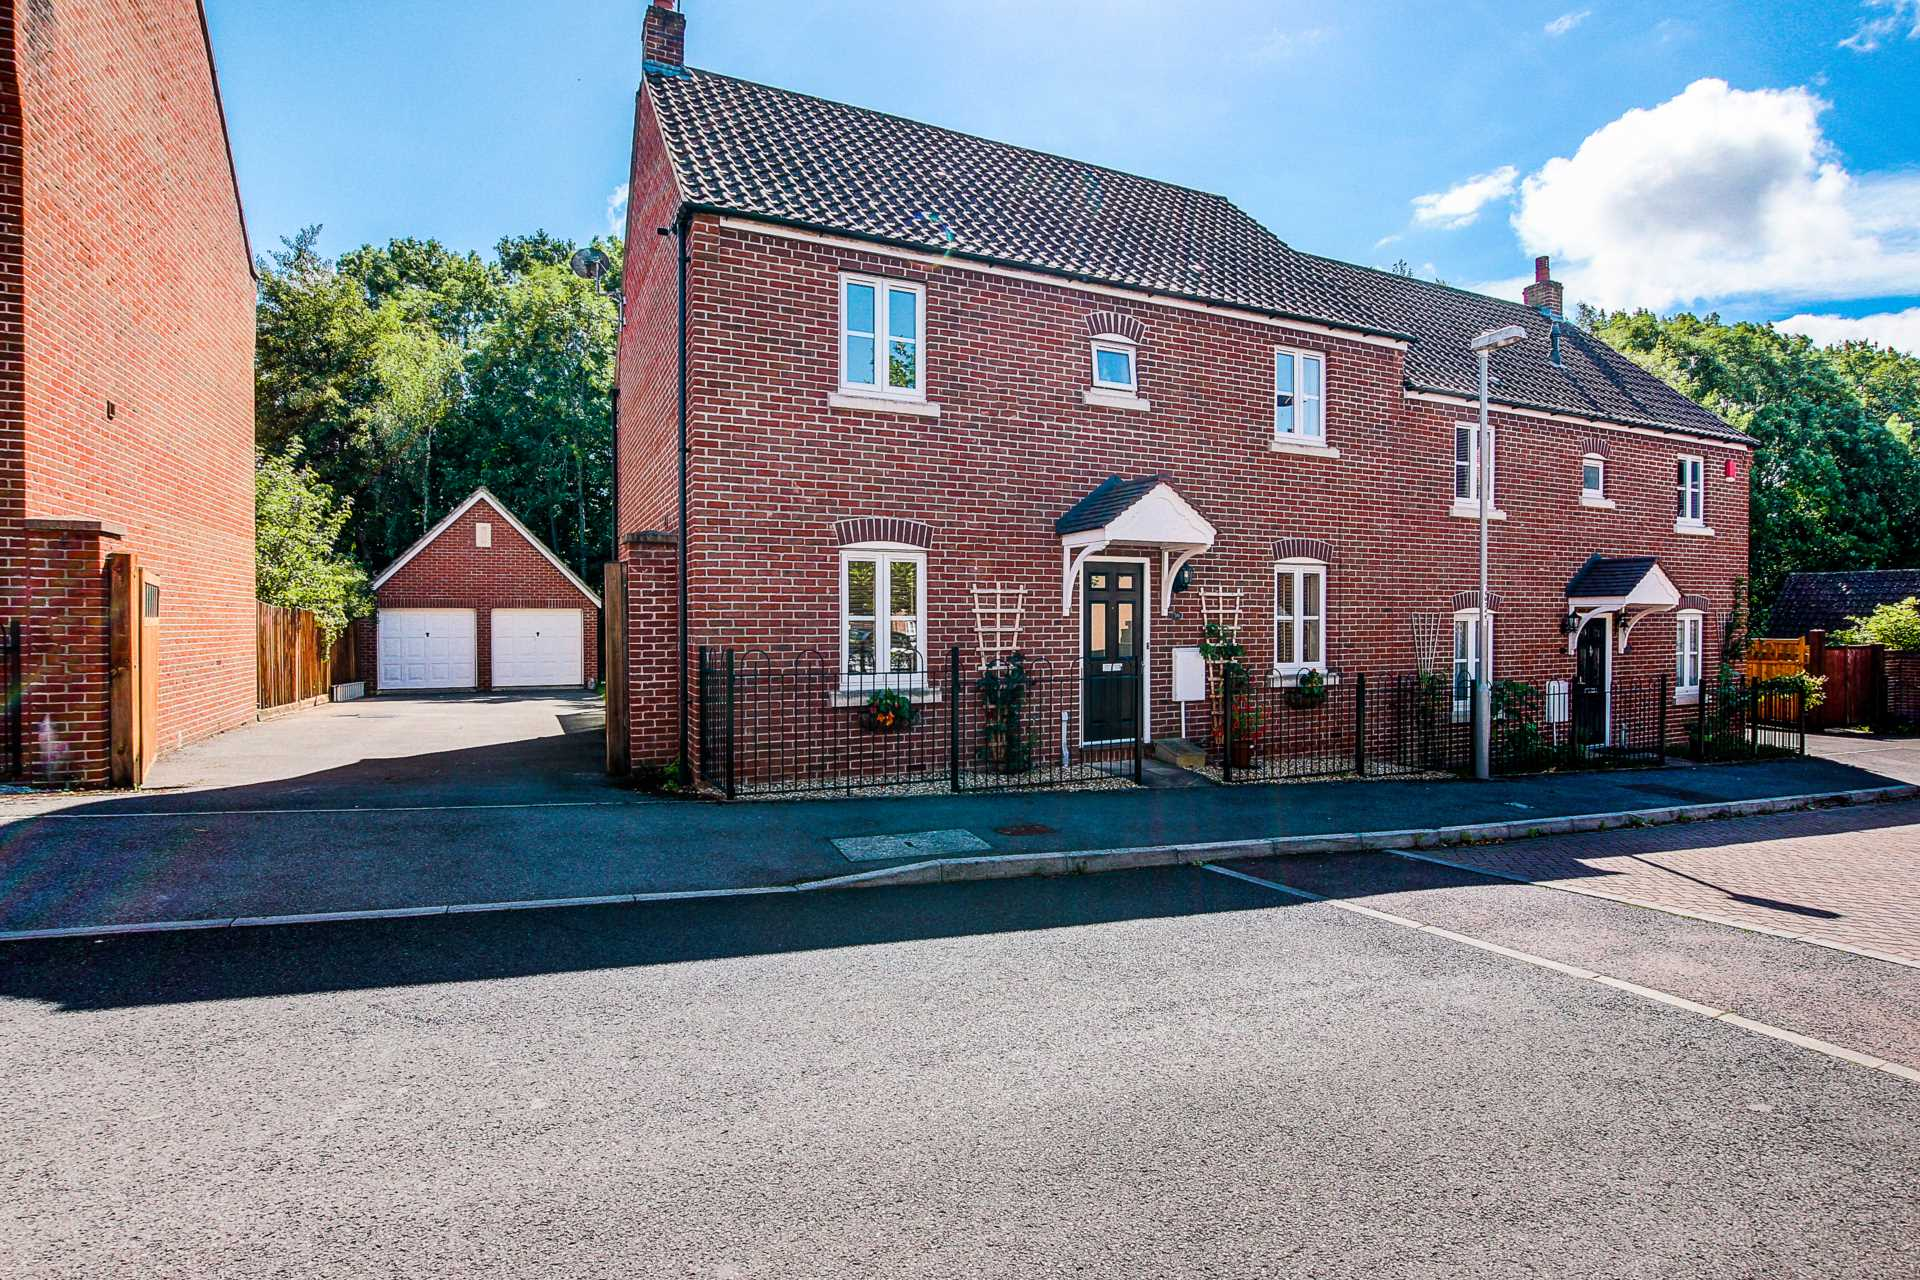 4 bed semi-detached house for sale in Westbury Way, Blandford Forum  - Property Image 1